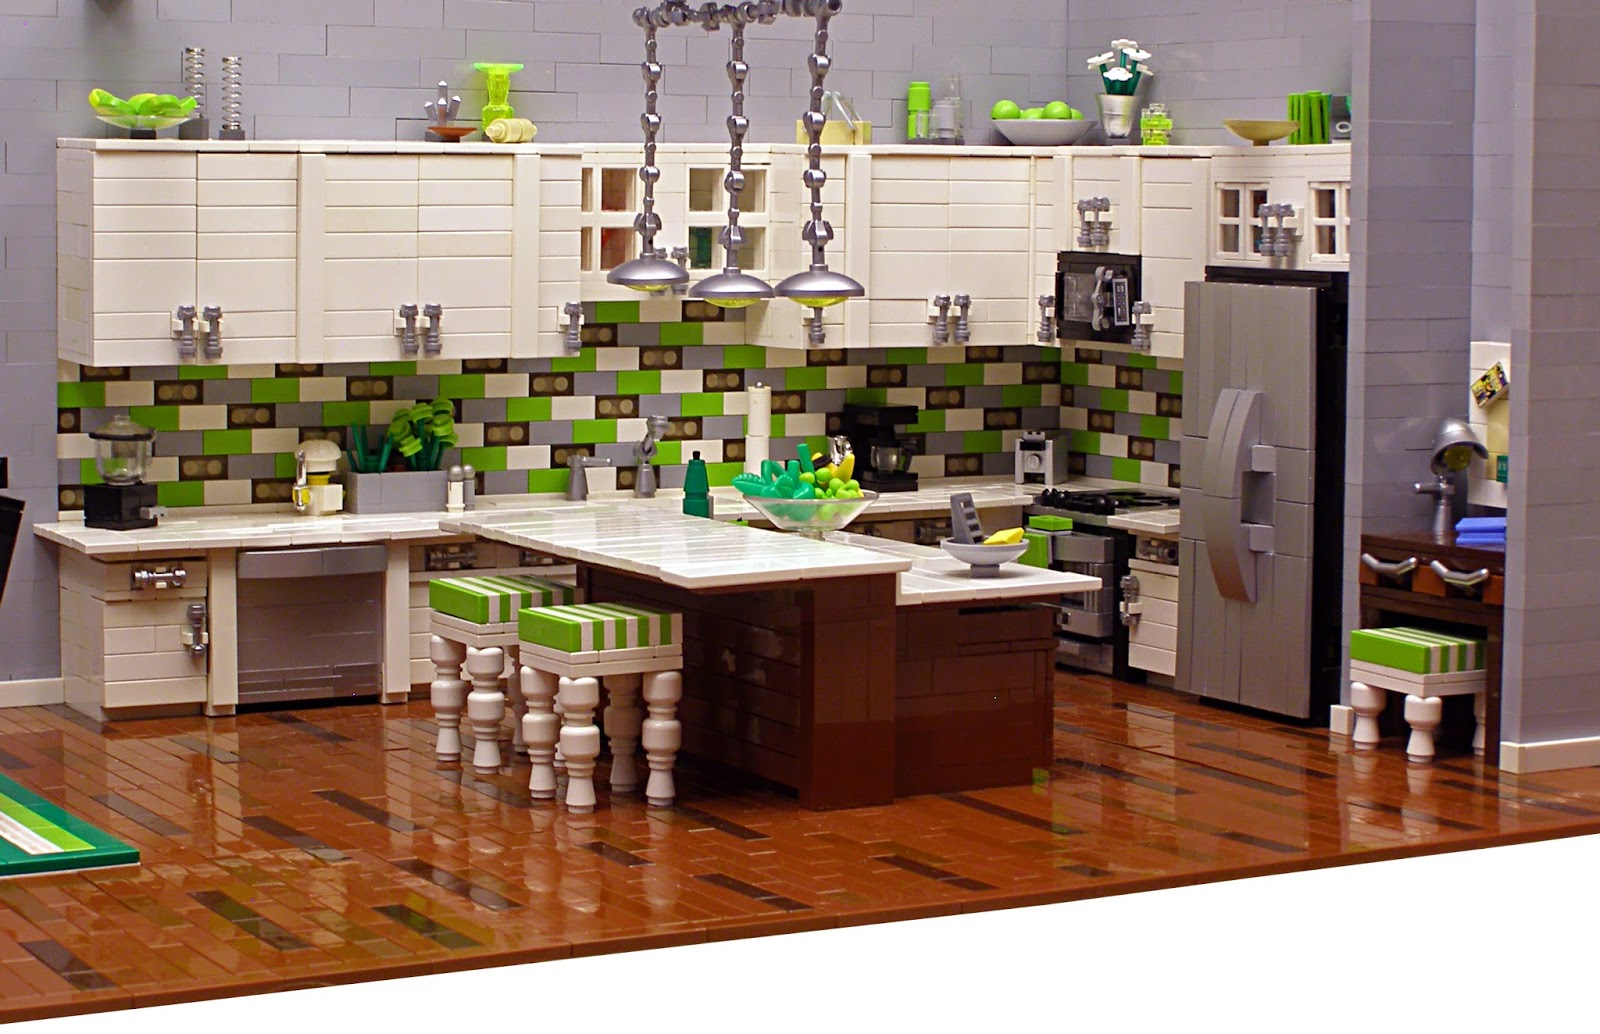 The brickverse amazing lego interiors for House kitchen ideas